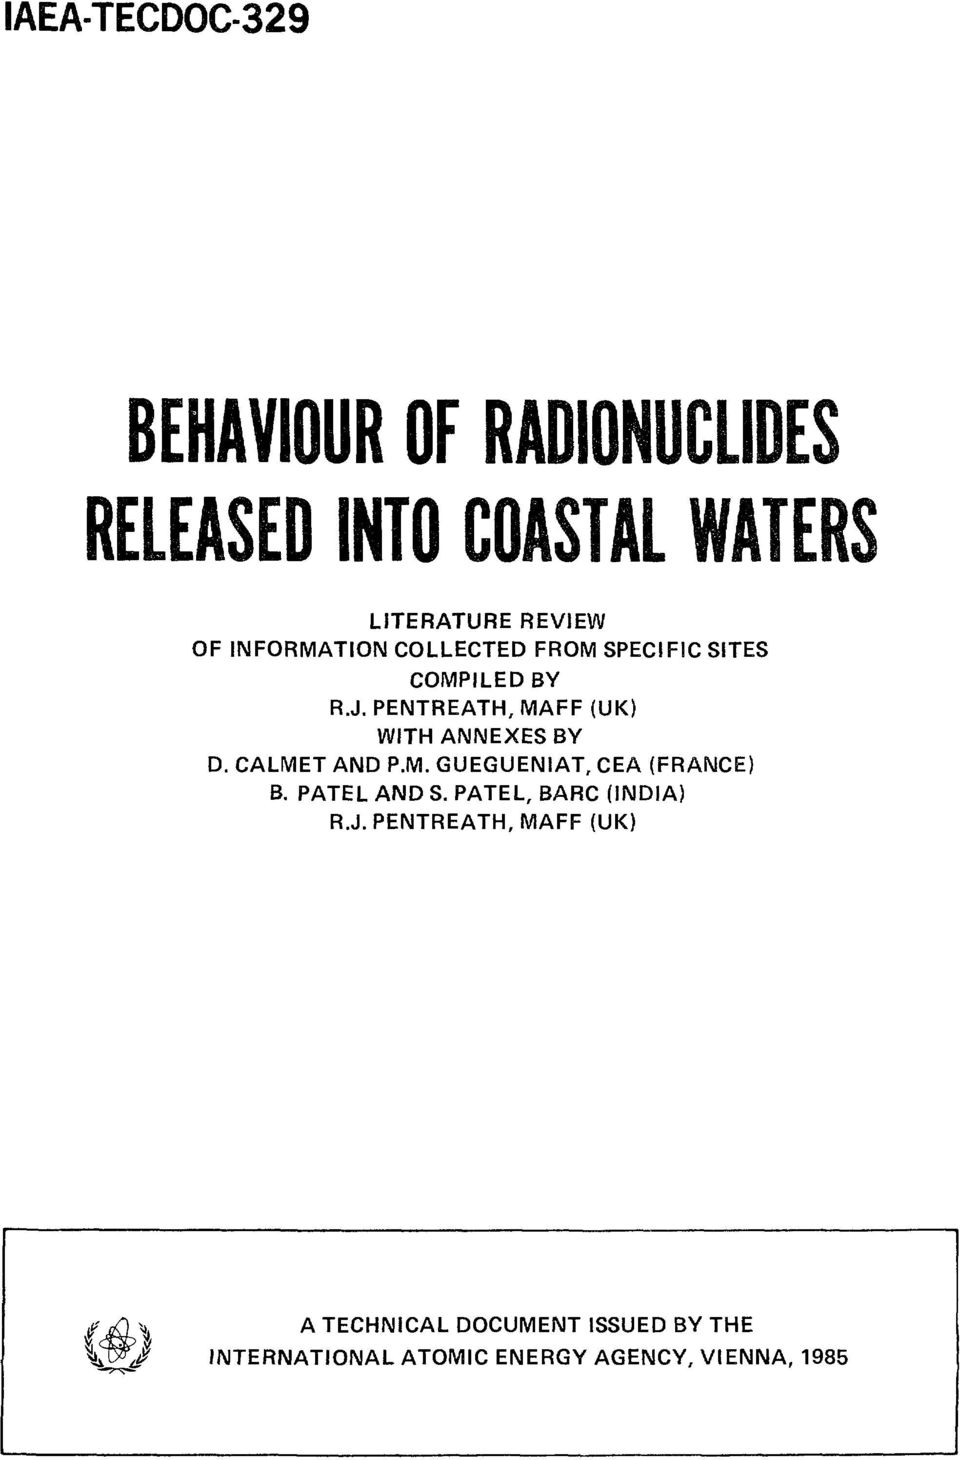 RADIONUCLIDES RELEASED